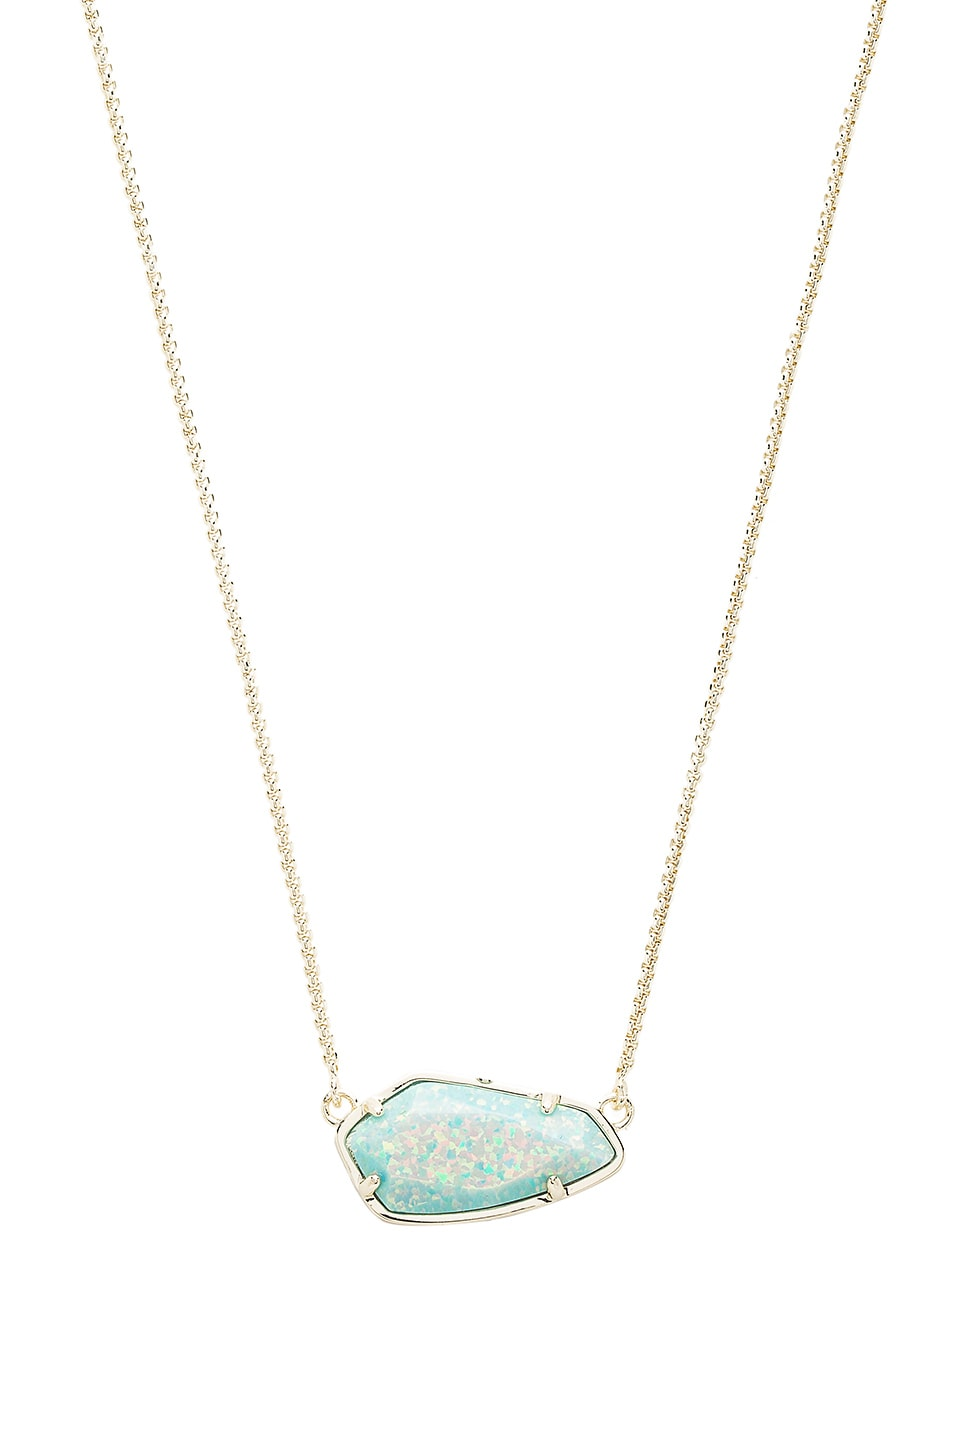 Kendra Scott Cami Necklace in Gold & Aqua Kyocera Opal